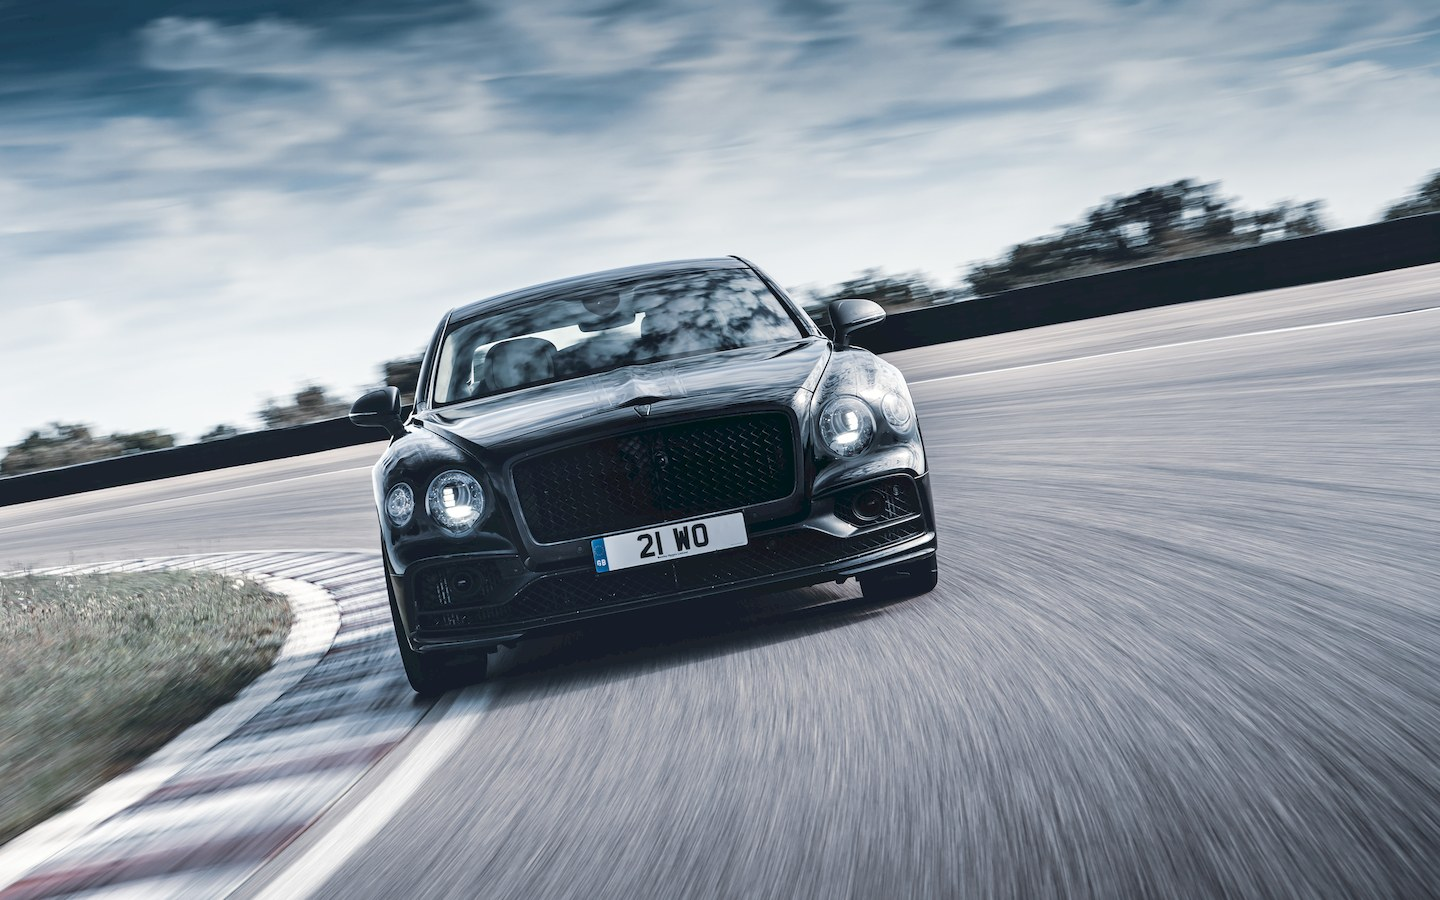 Bentley claims the all-new Flying Spur is the world's most advanced luxury Grand Touring sports sedan